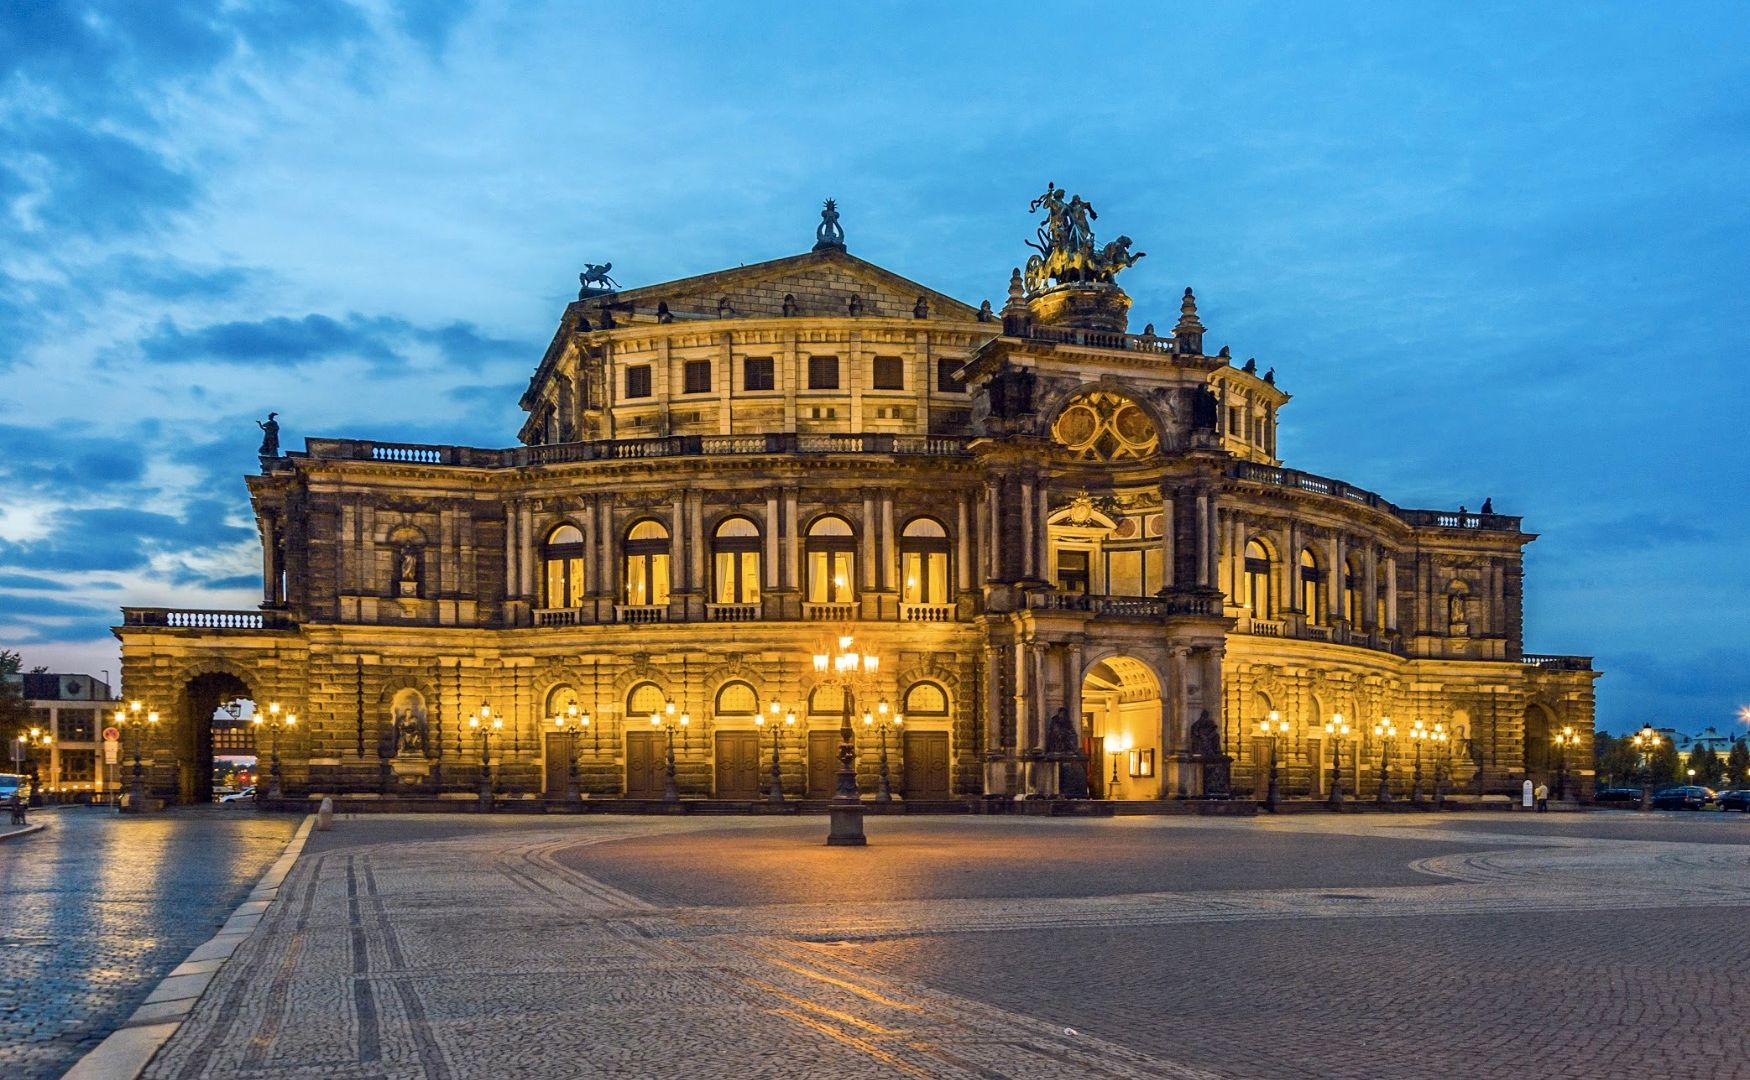 Opéra, Dresde - Allemagne ©Thinkstock